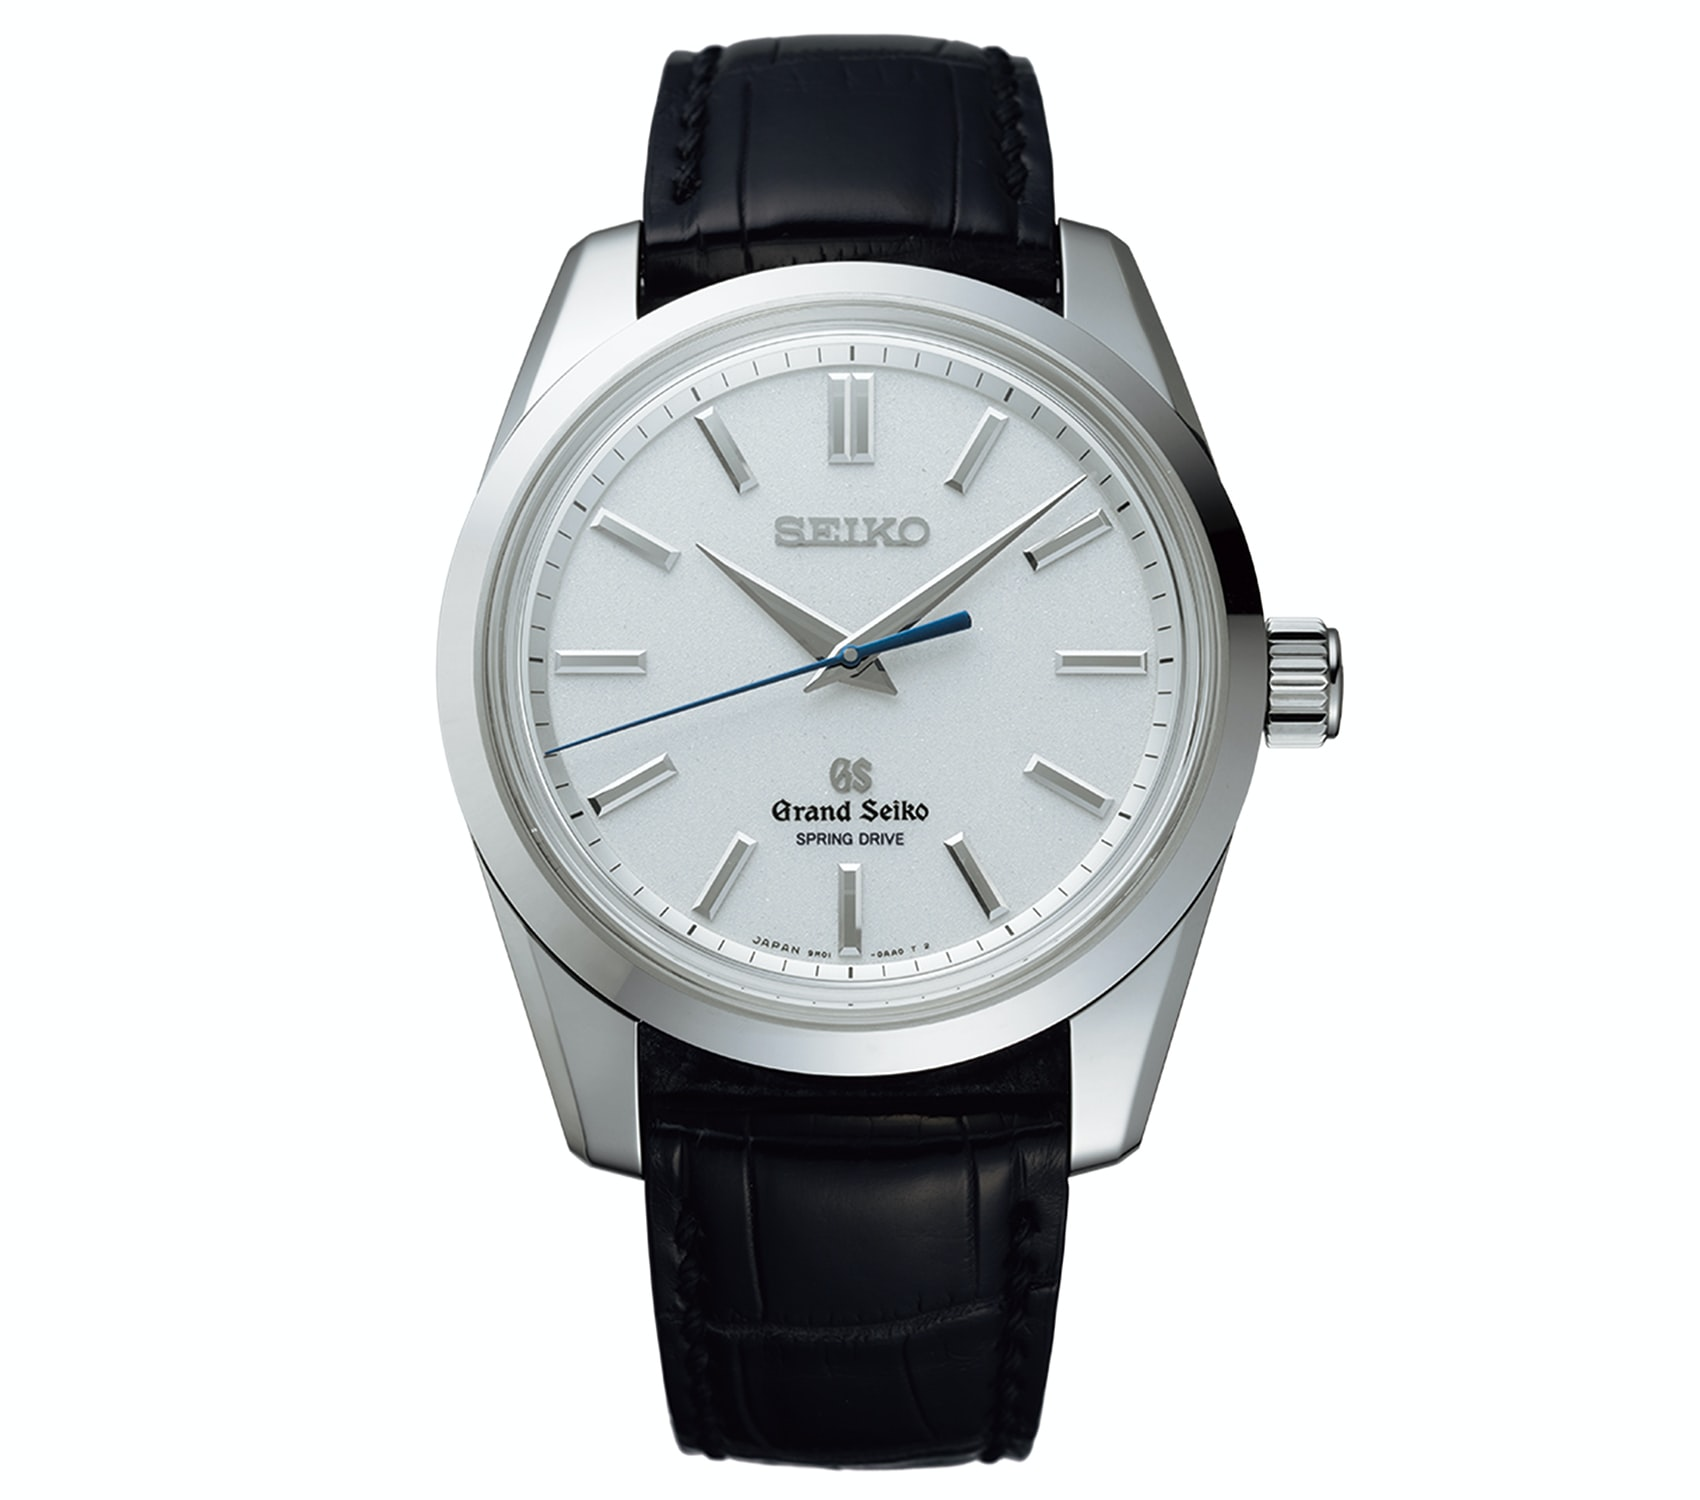 The Grand Seiko Spring Drive 8 Day Power Reserve